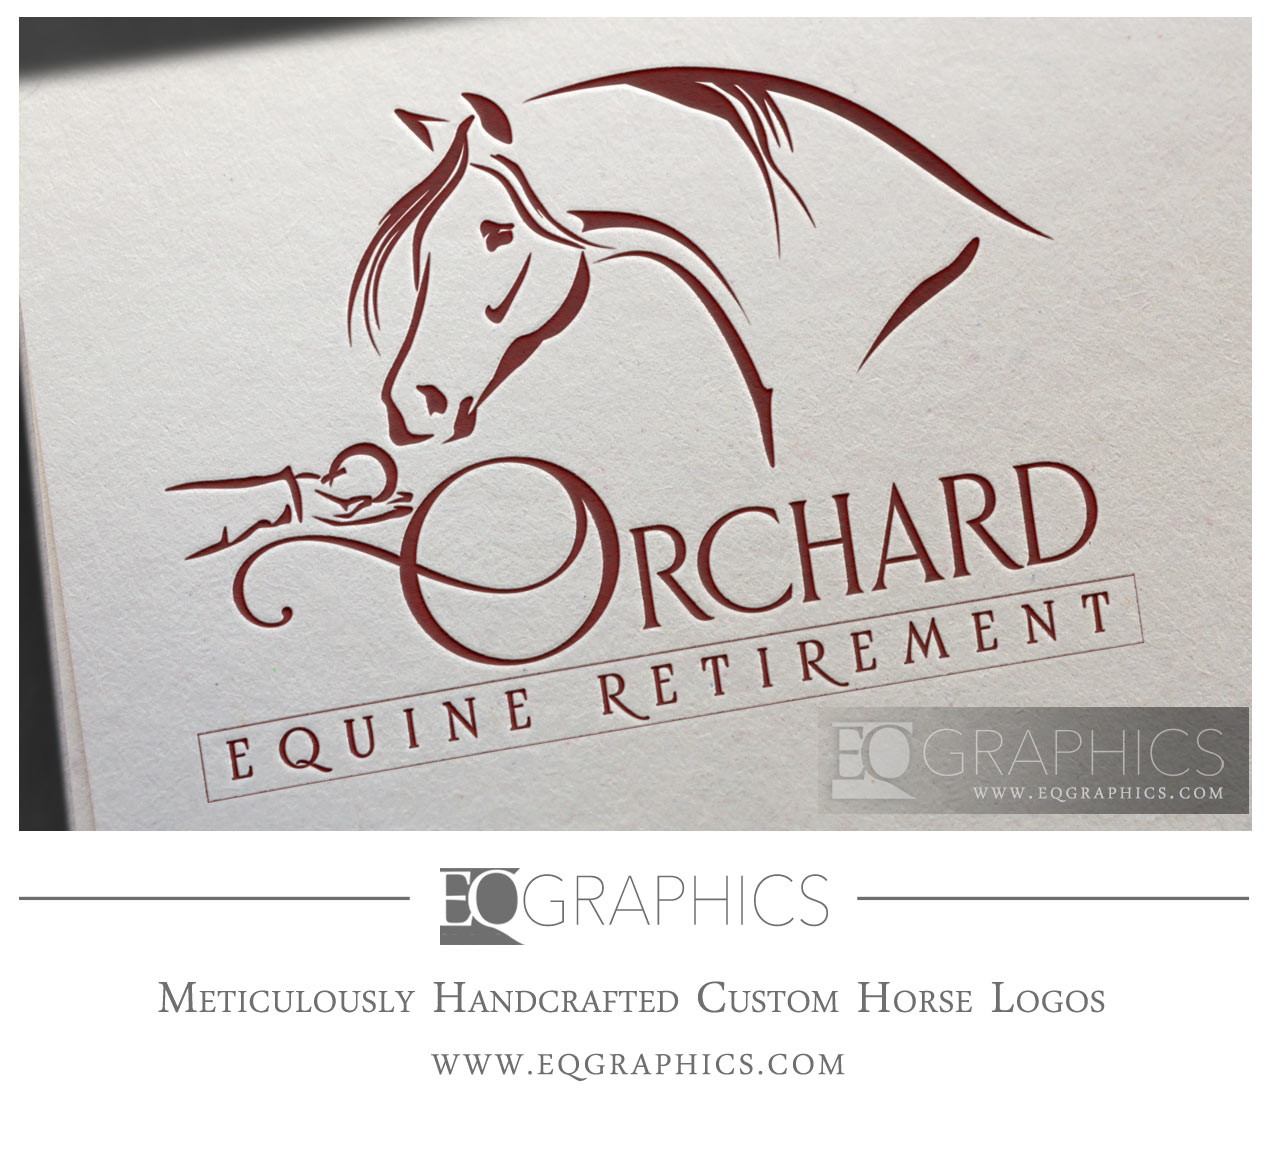 Orchard Equine Retirement Logo Design by EQ Graphics Designer Horse Logos